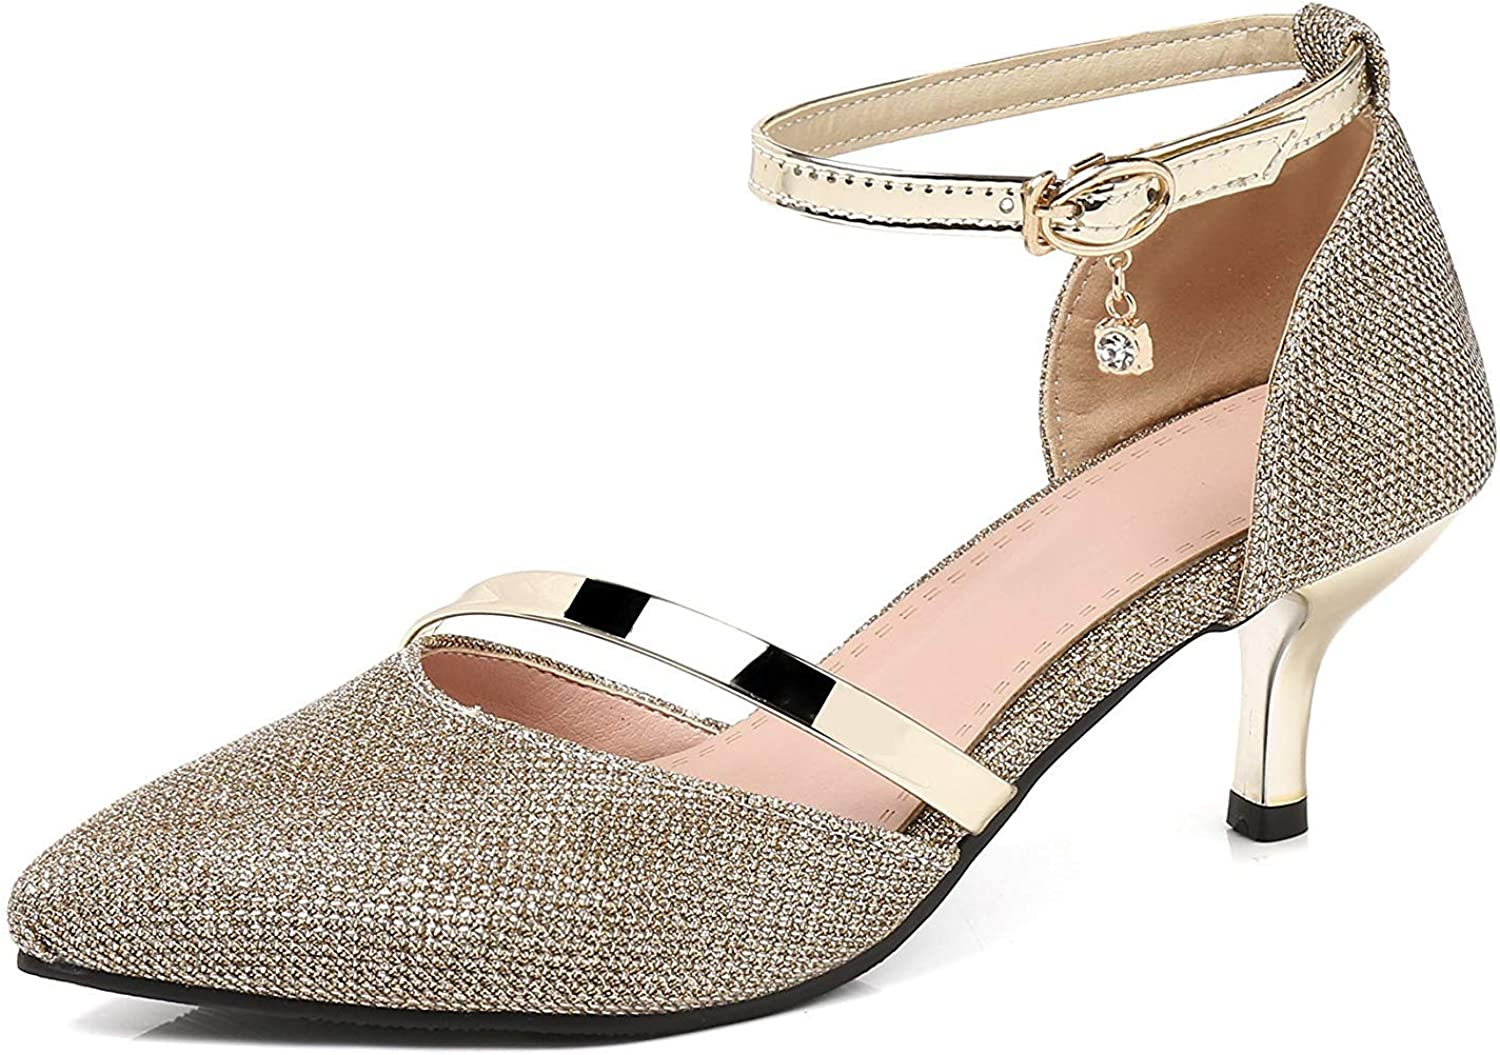 Unm Women's Closed Toe Sandals with Ankle Strap - D'Orsay Kitten Heel - Bridal Buckled Stilettos